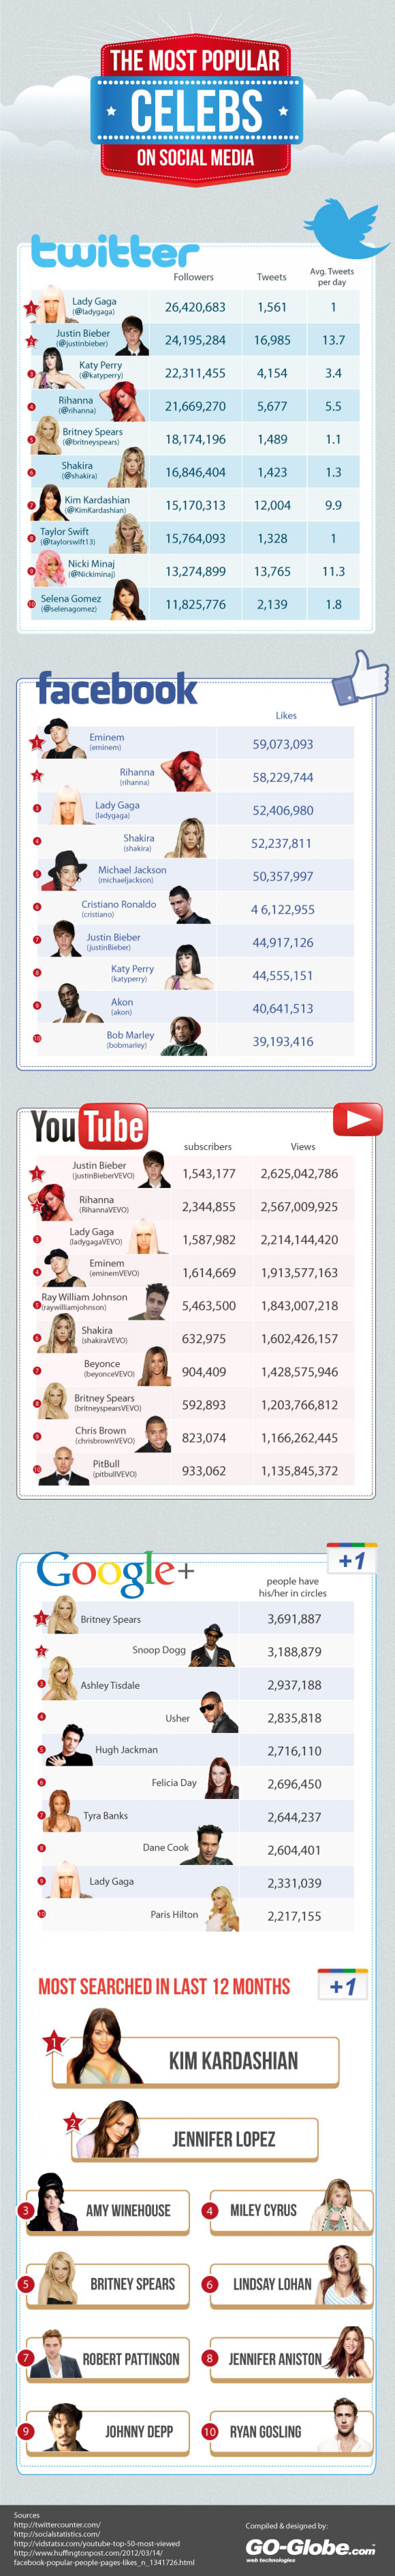 The Most Popular Celebs on Social Media Infographic